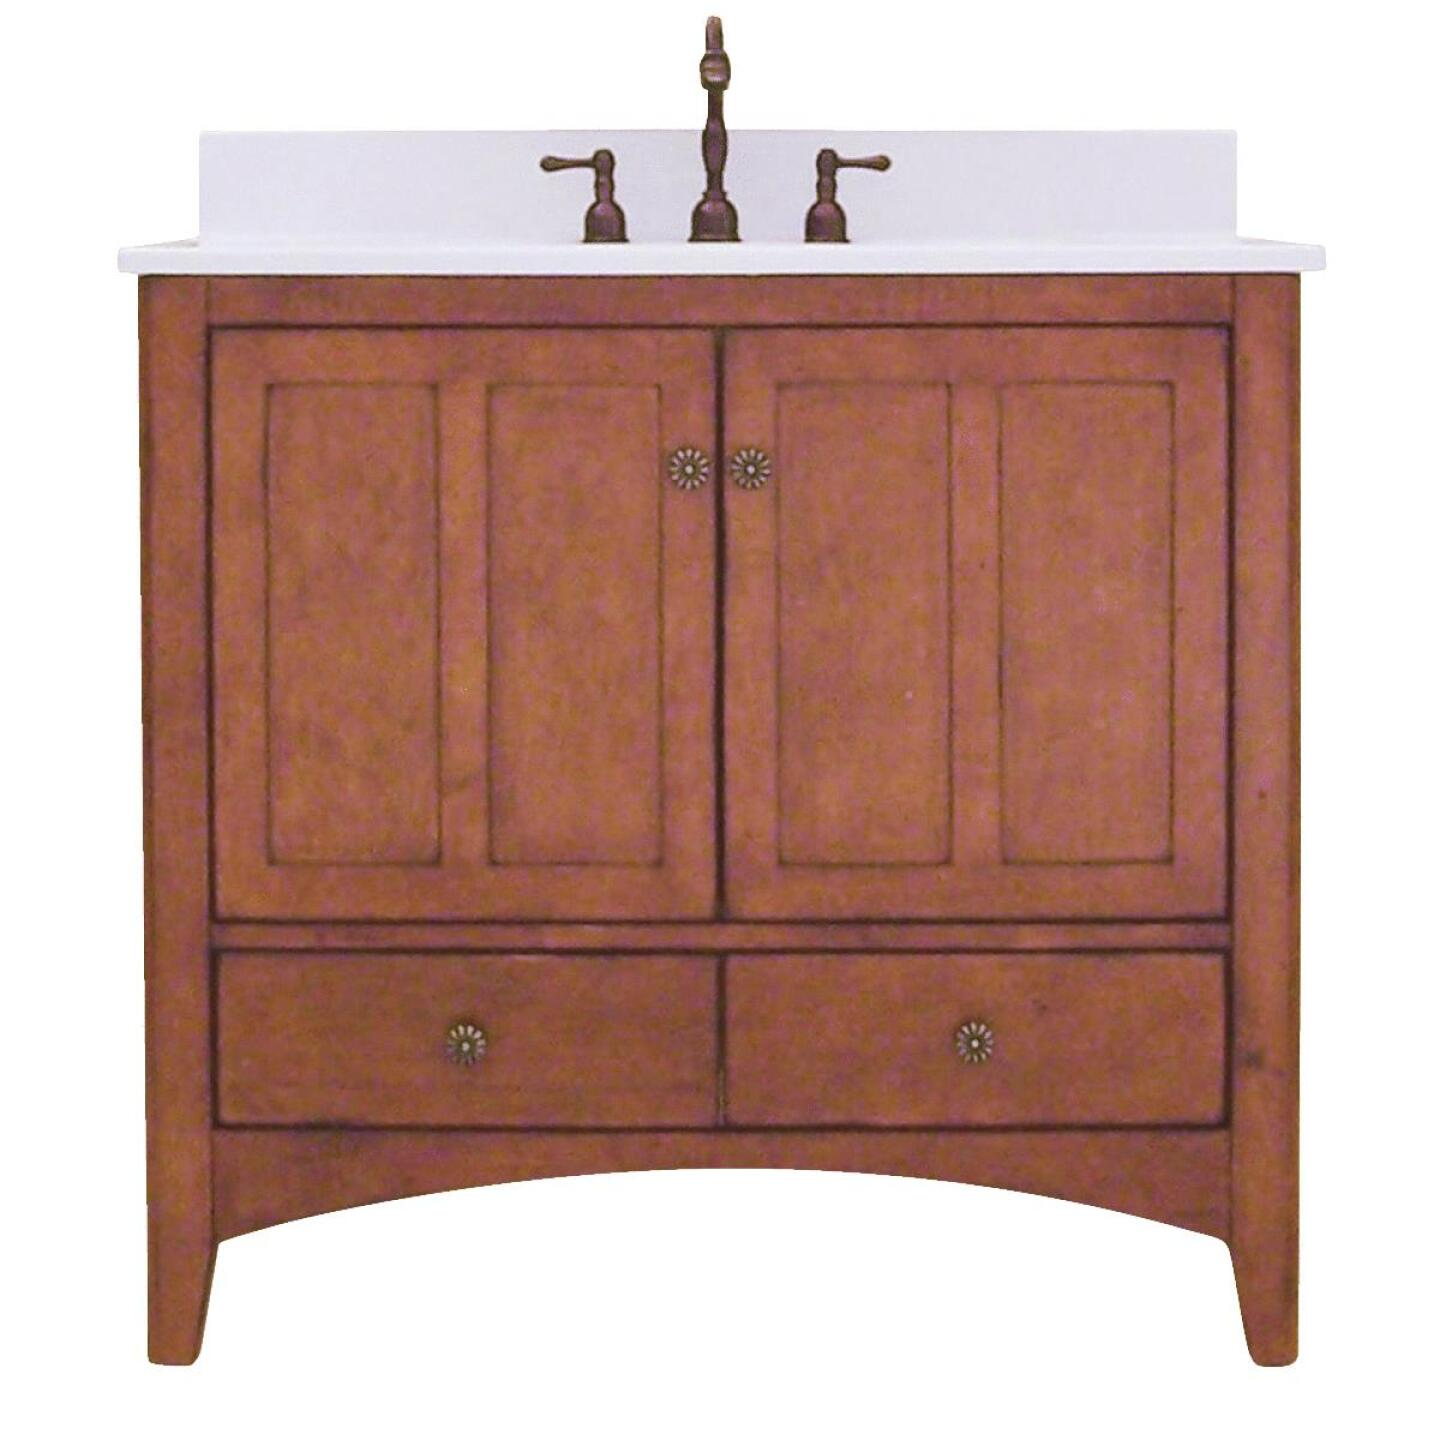 Sunny Wood Expressions Warm Cinnamon 36 In. W x 34 In. H x 21-1/4 In. D Vanity Base, 2 Door/2 Drawer Image 1